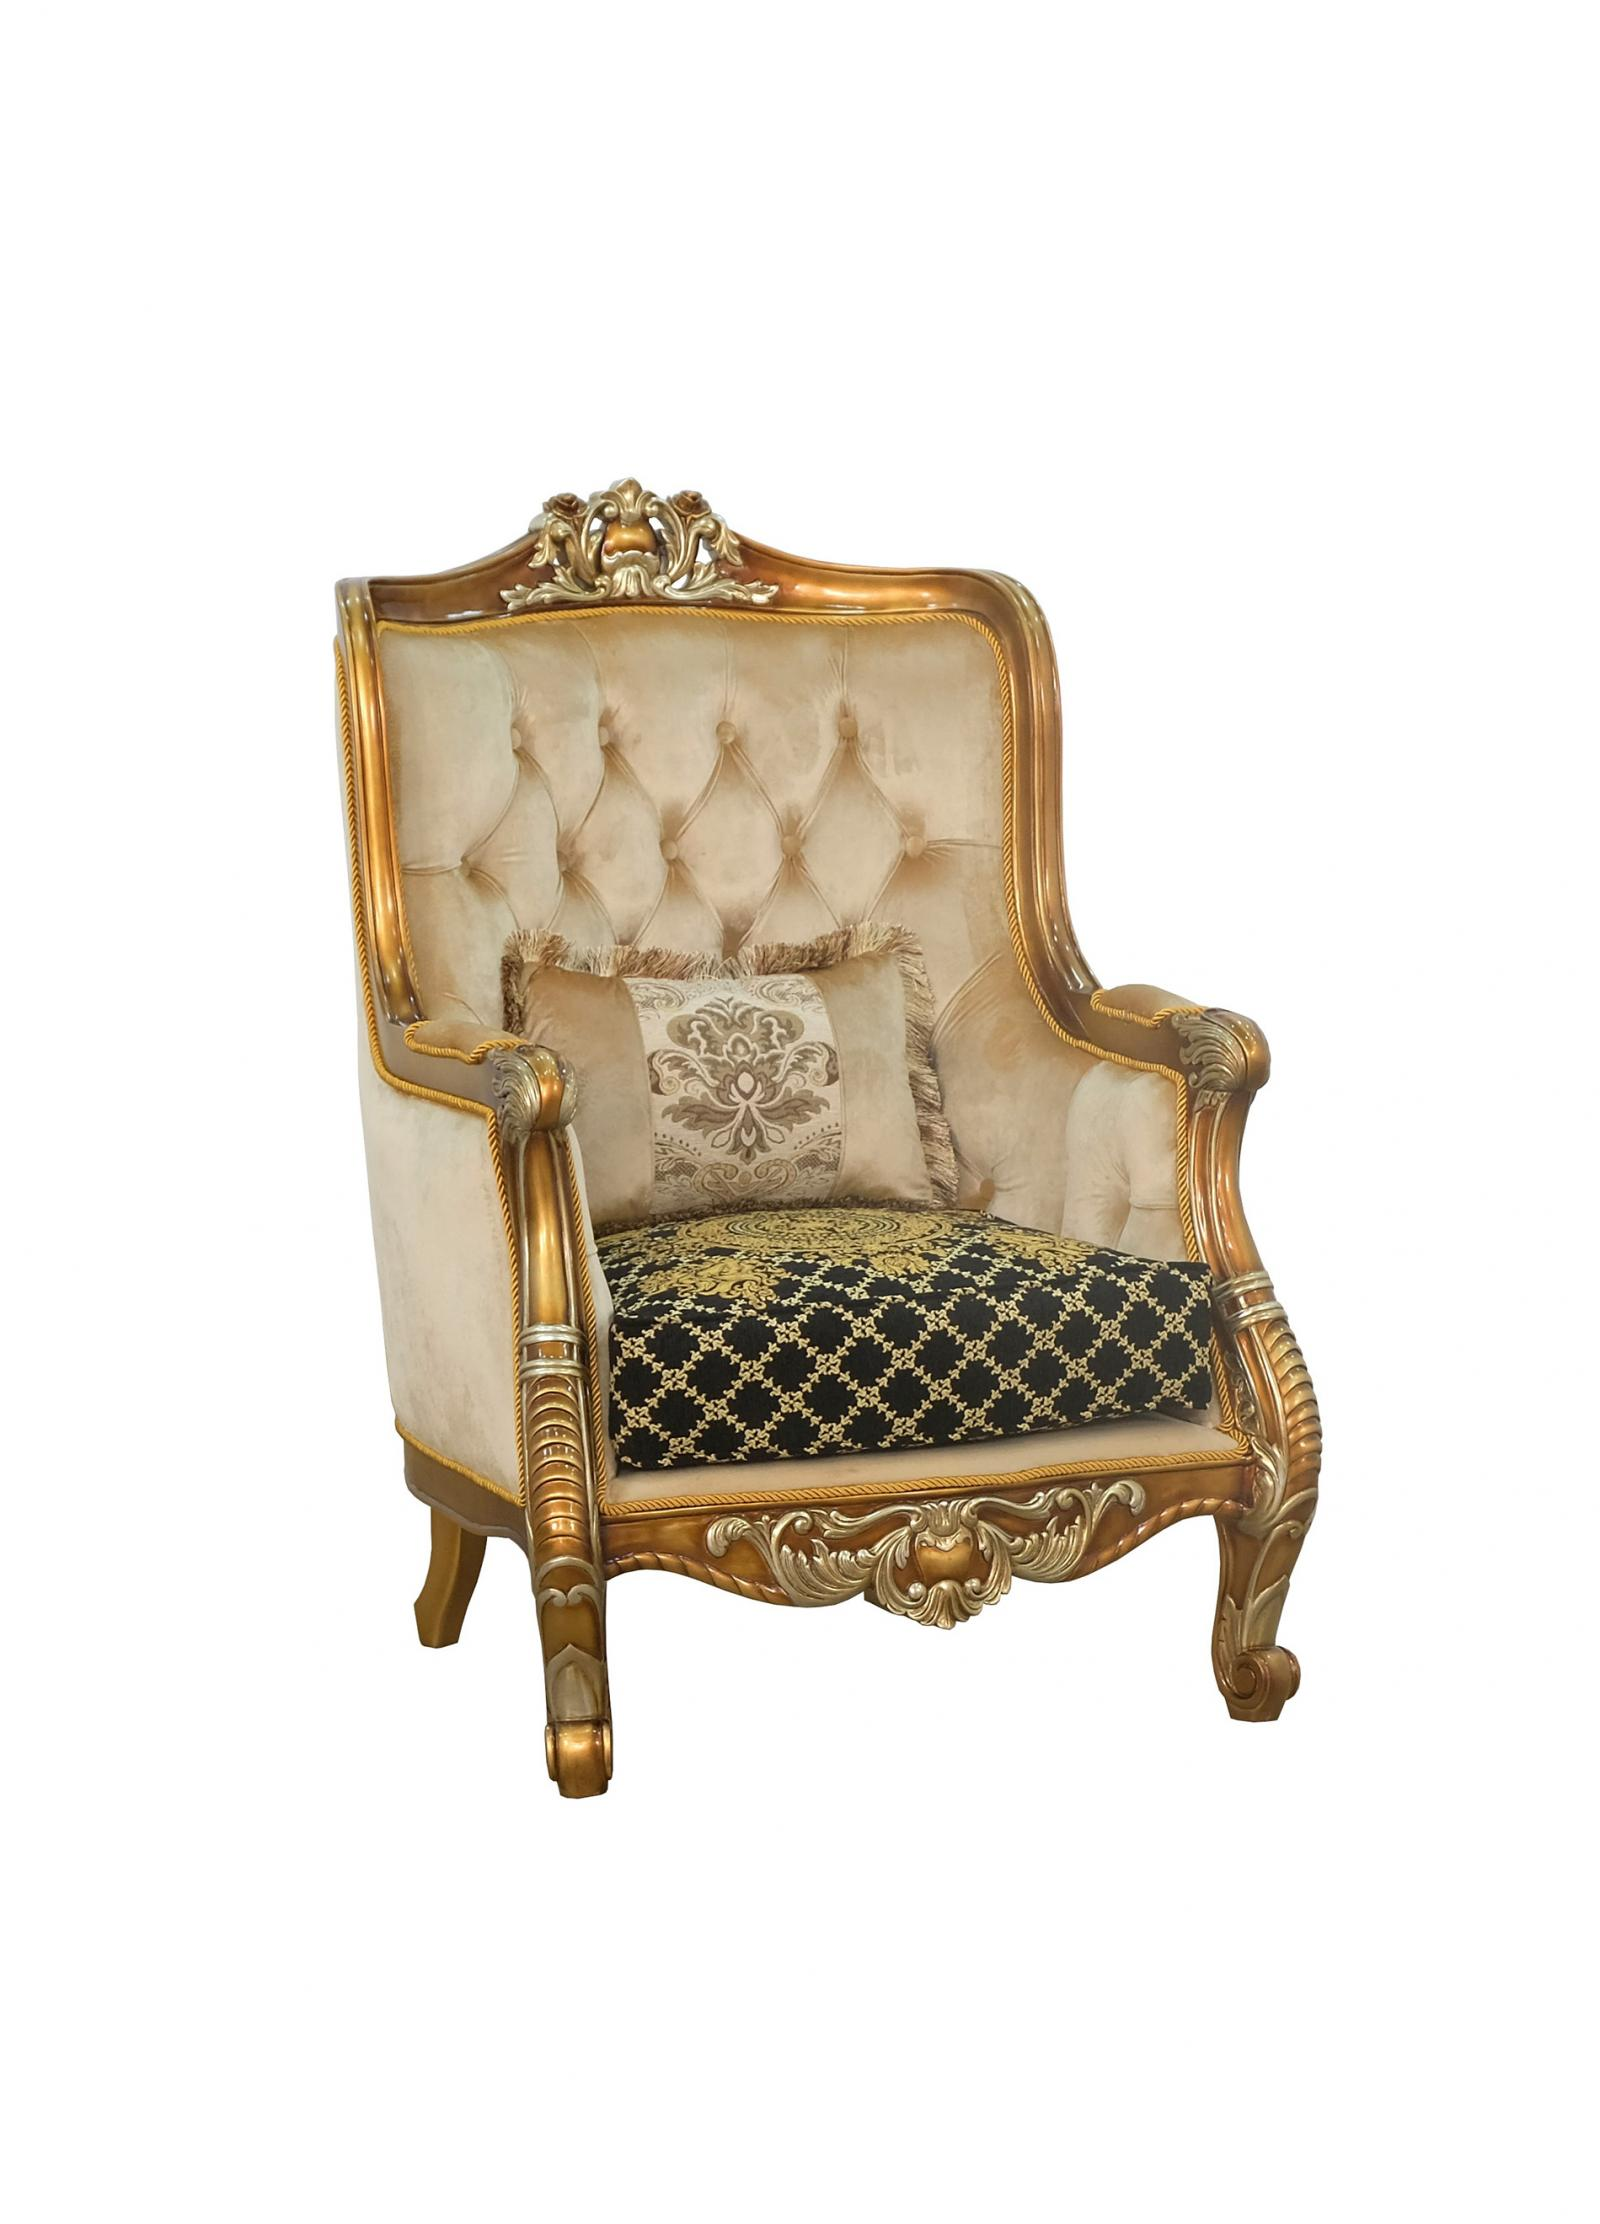 Classic  Traditional Gold  Silver  Antique   Black Wood  Solid Hardwood and Fabric Arm Chair EUROPEAN FURNITURE 68586-C